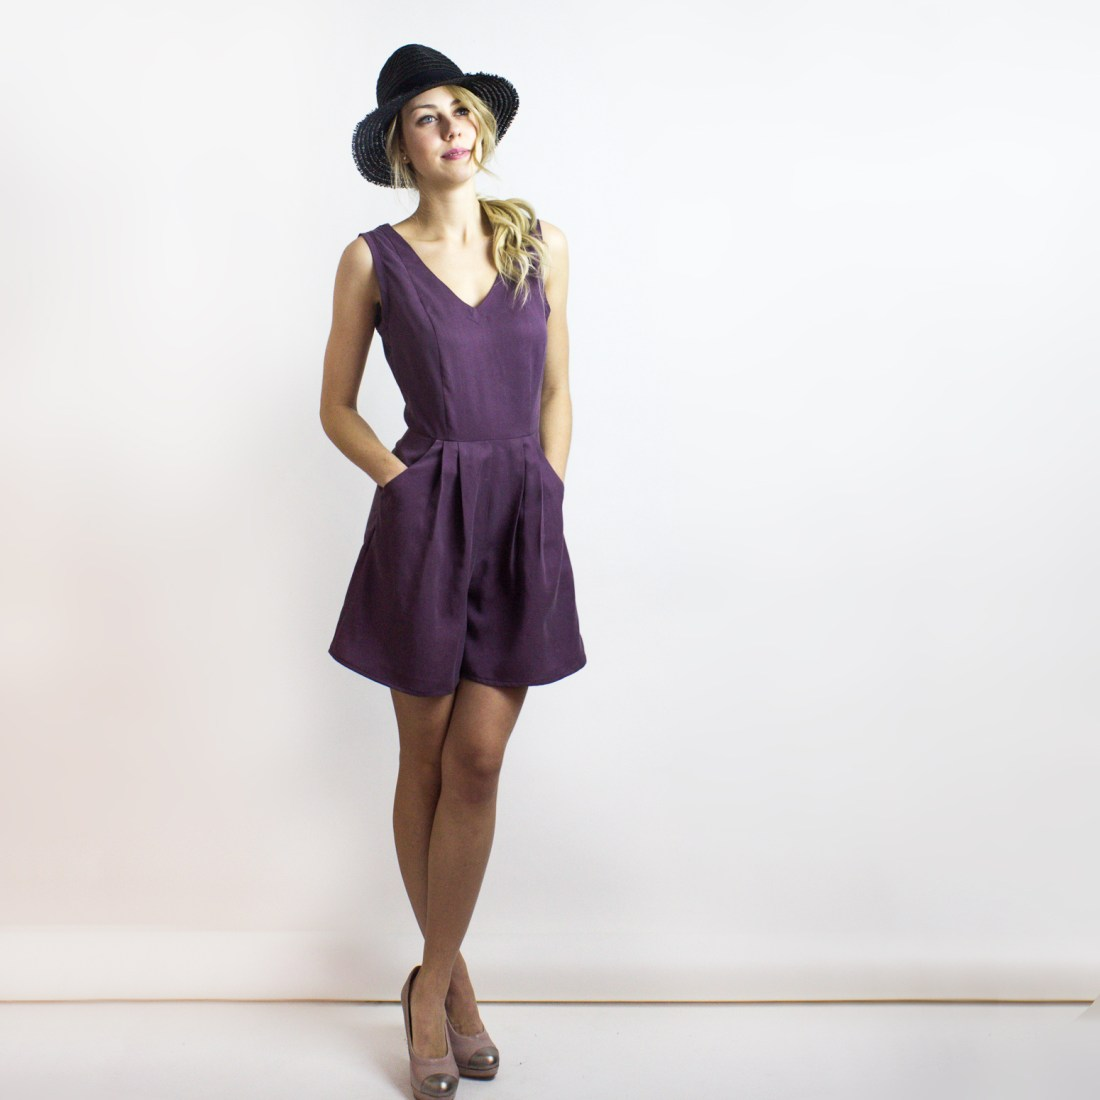 Plum Flint Romper Jumpsuit from Simone's Rose SS16 Collection | eco-conscious and sustainable women's fashion label made in downtown Toronto